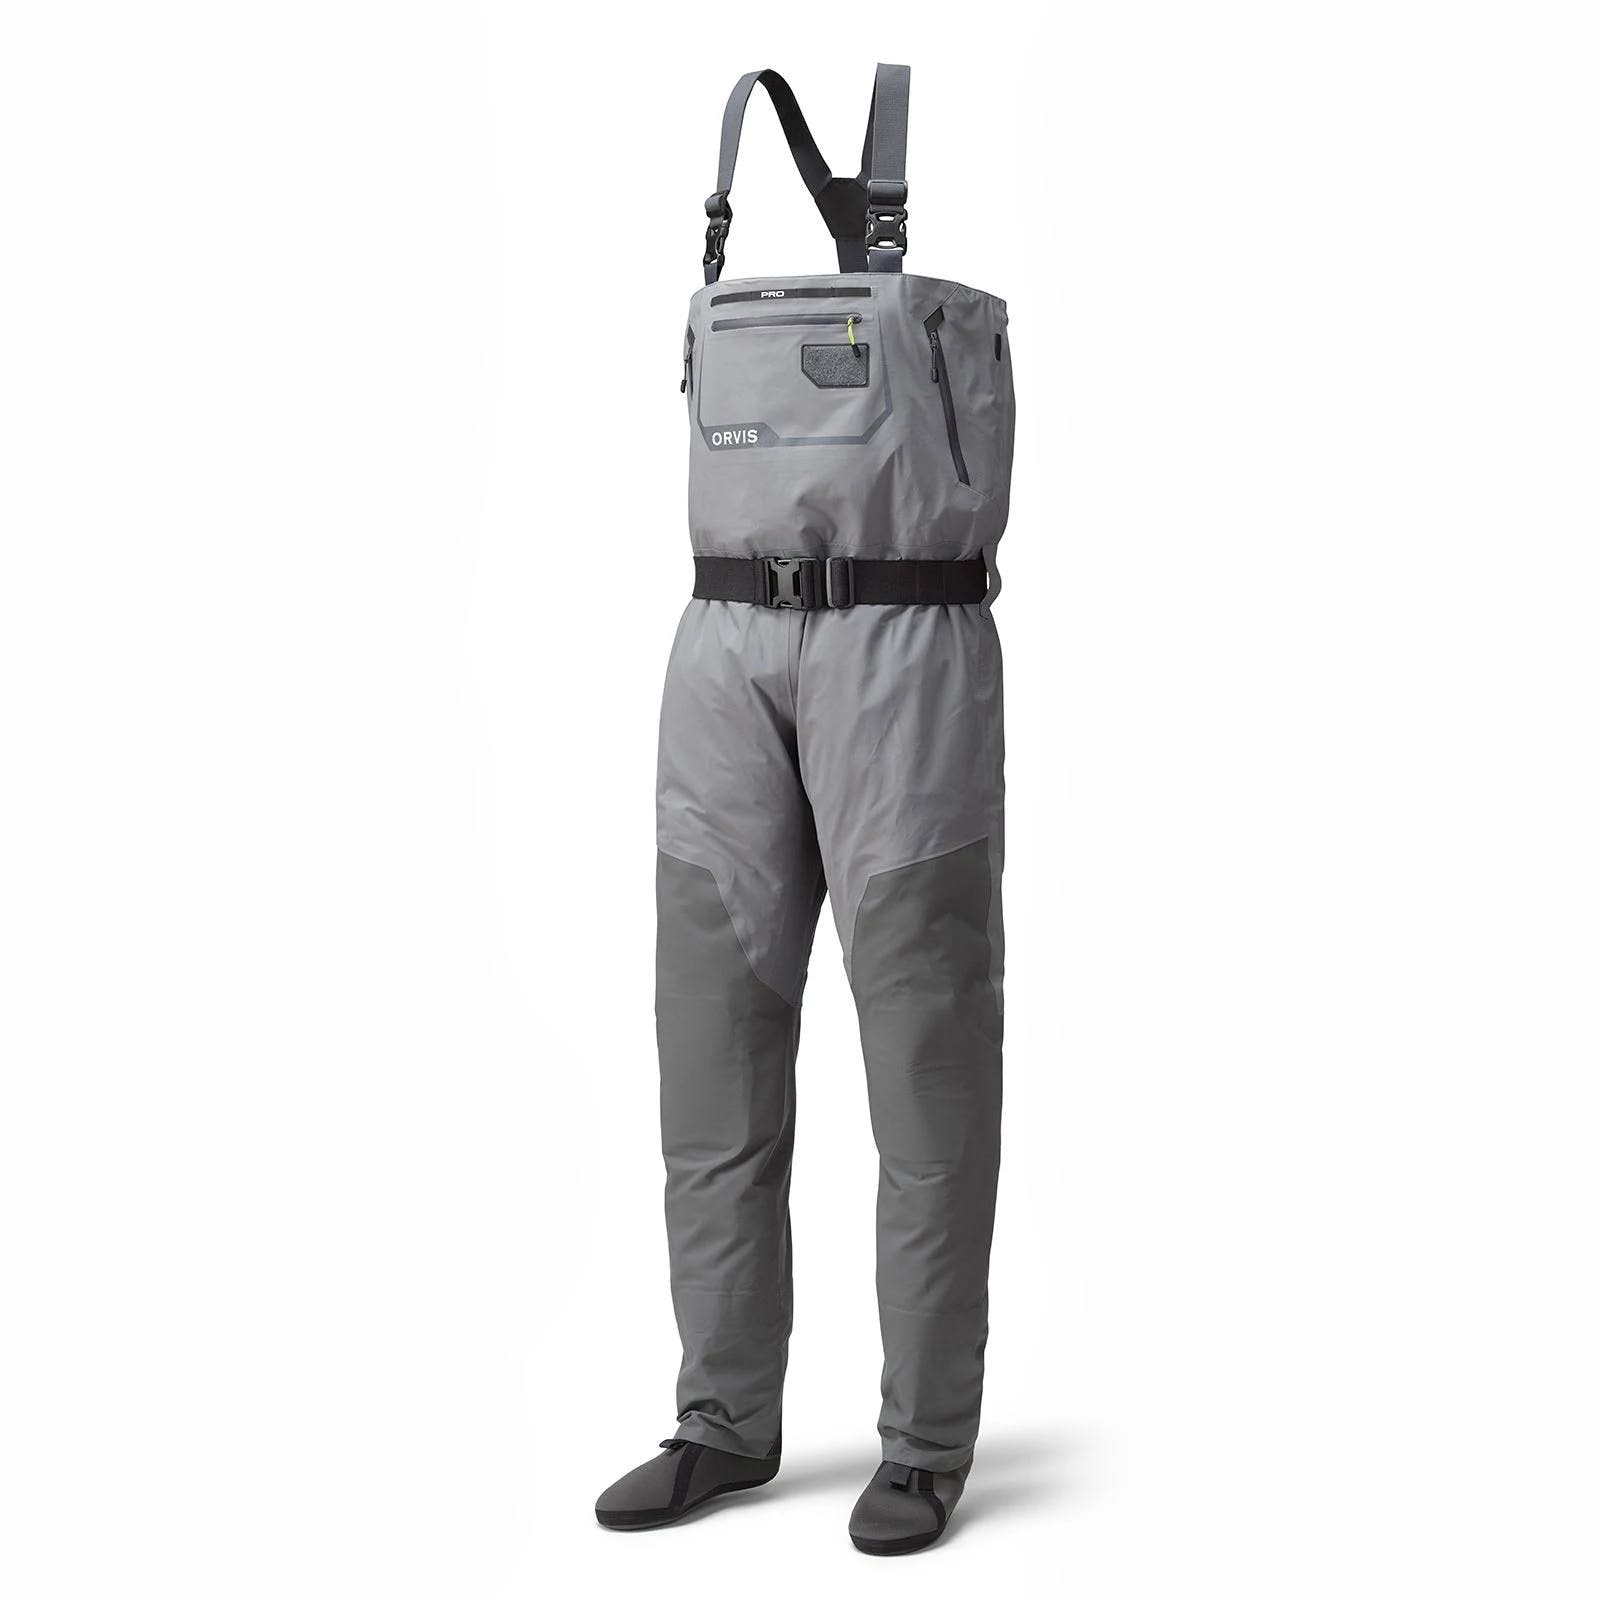 Orvis Pro Wader - Men's Shadow, XL/Short